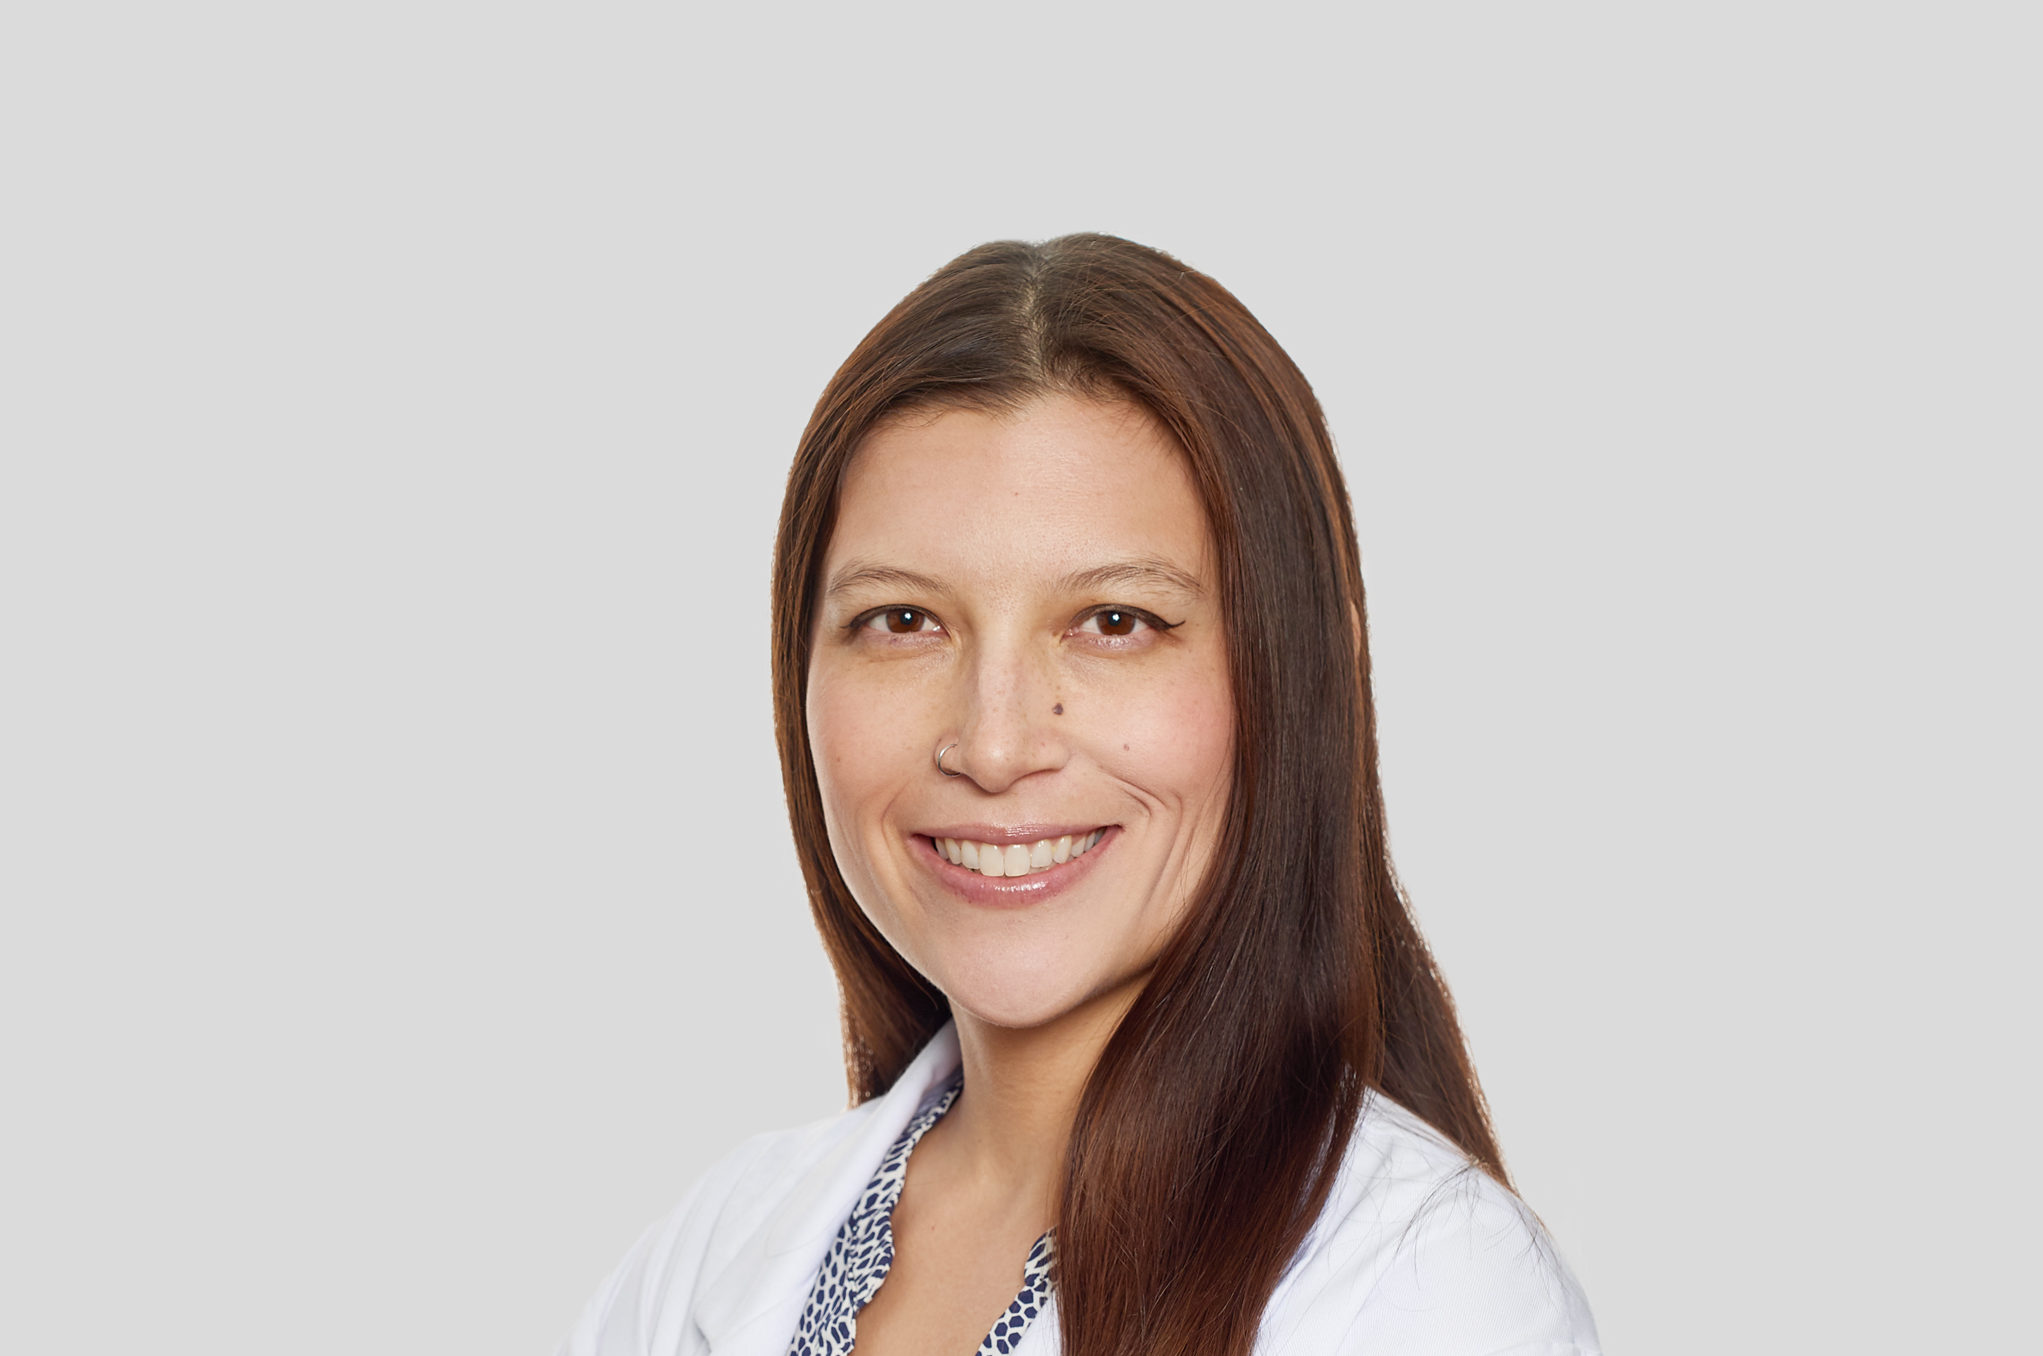 Dr. Jennifer Repac of the Animal Medical Center in New York City